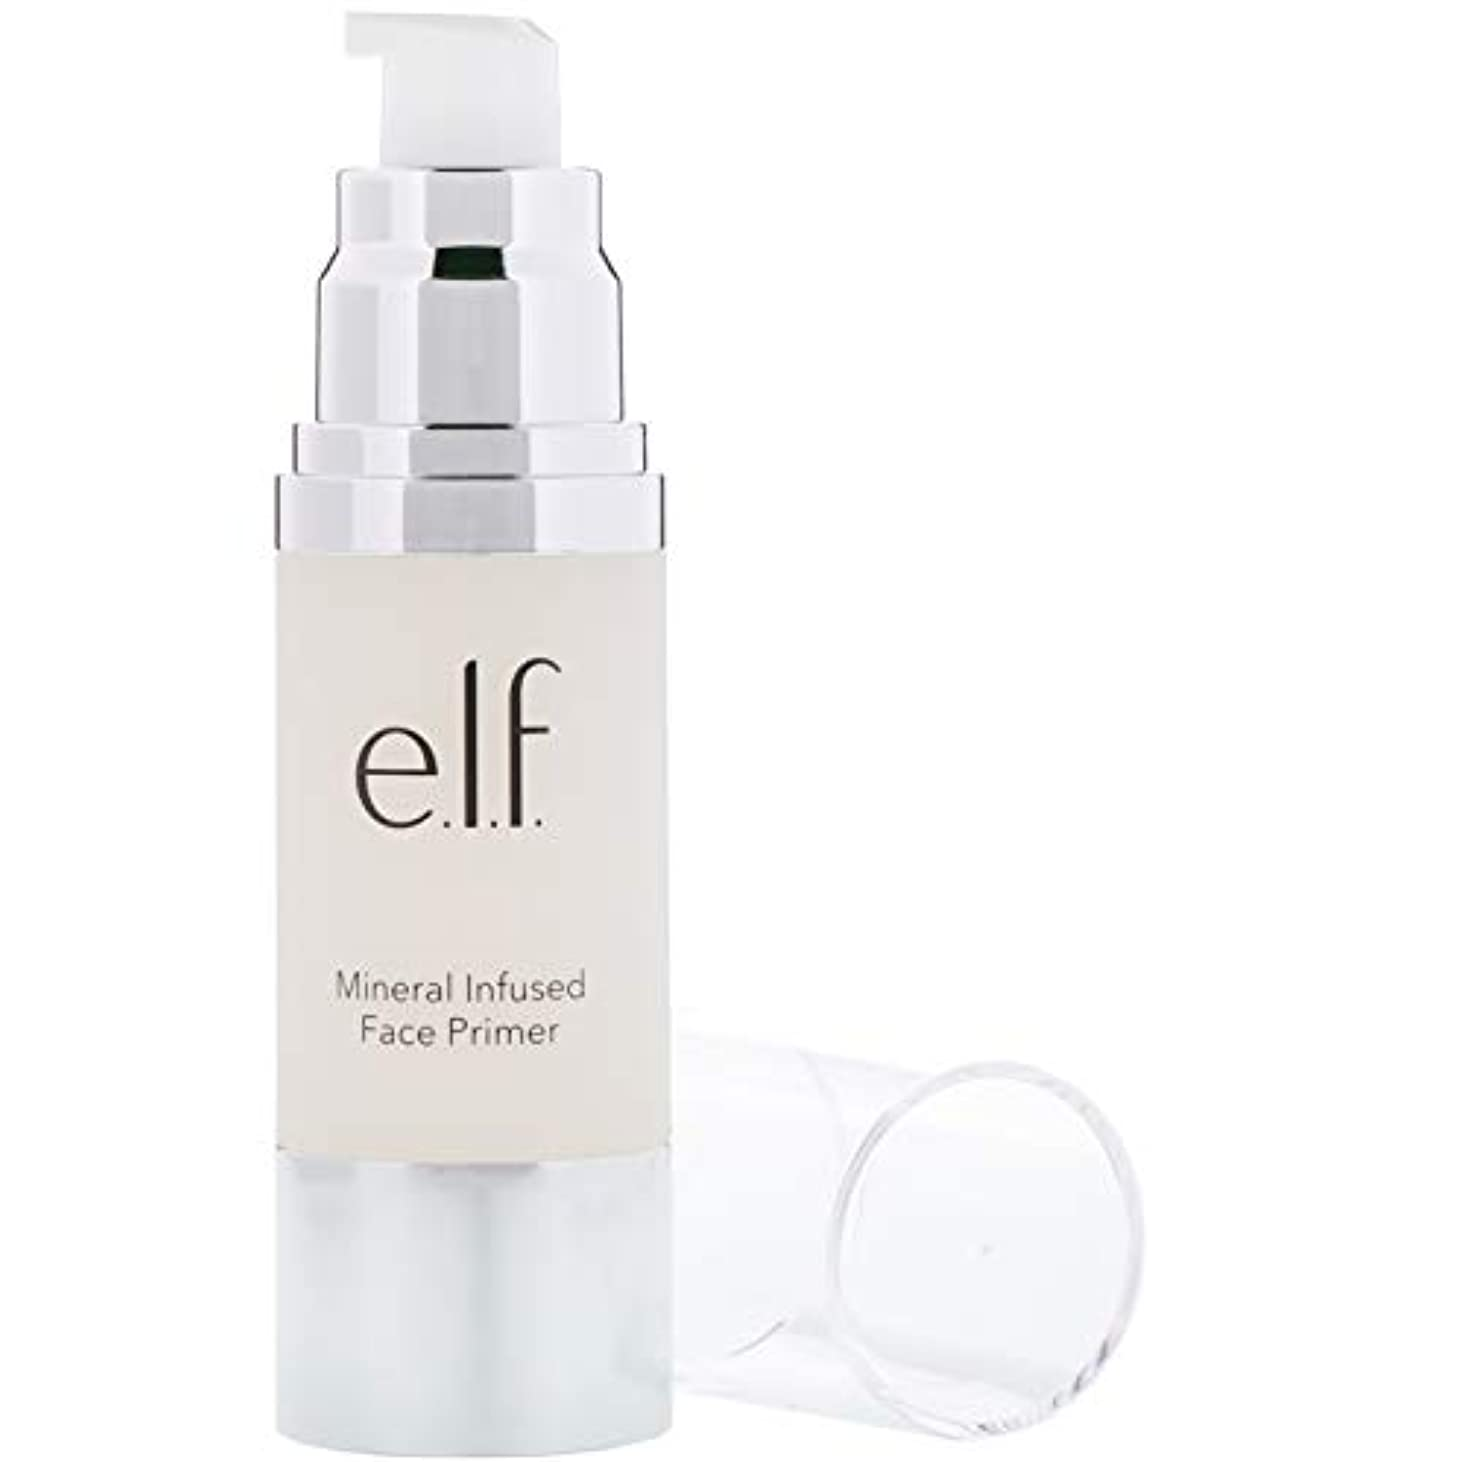 e.l.f. Mineral Infused Face Primer Large - Clear (並行輸入品)